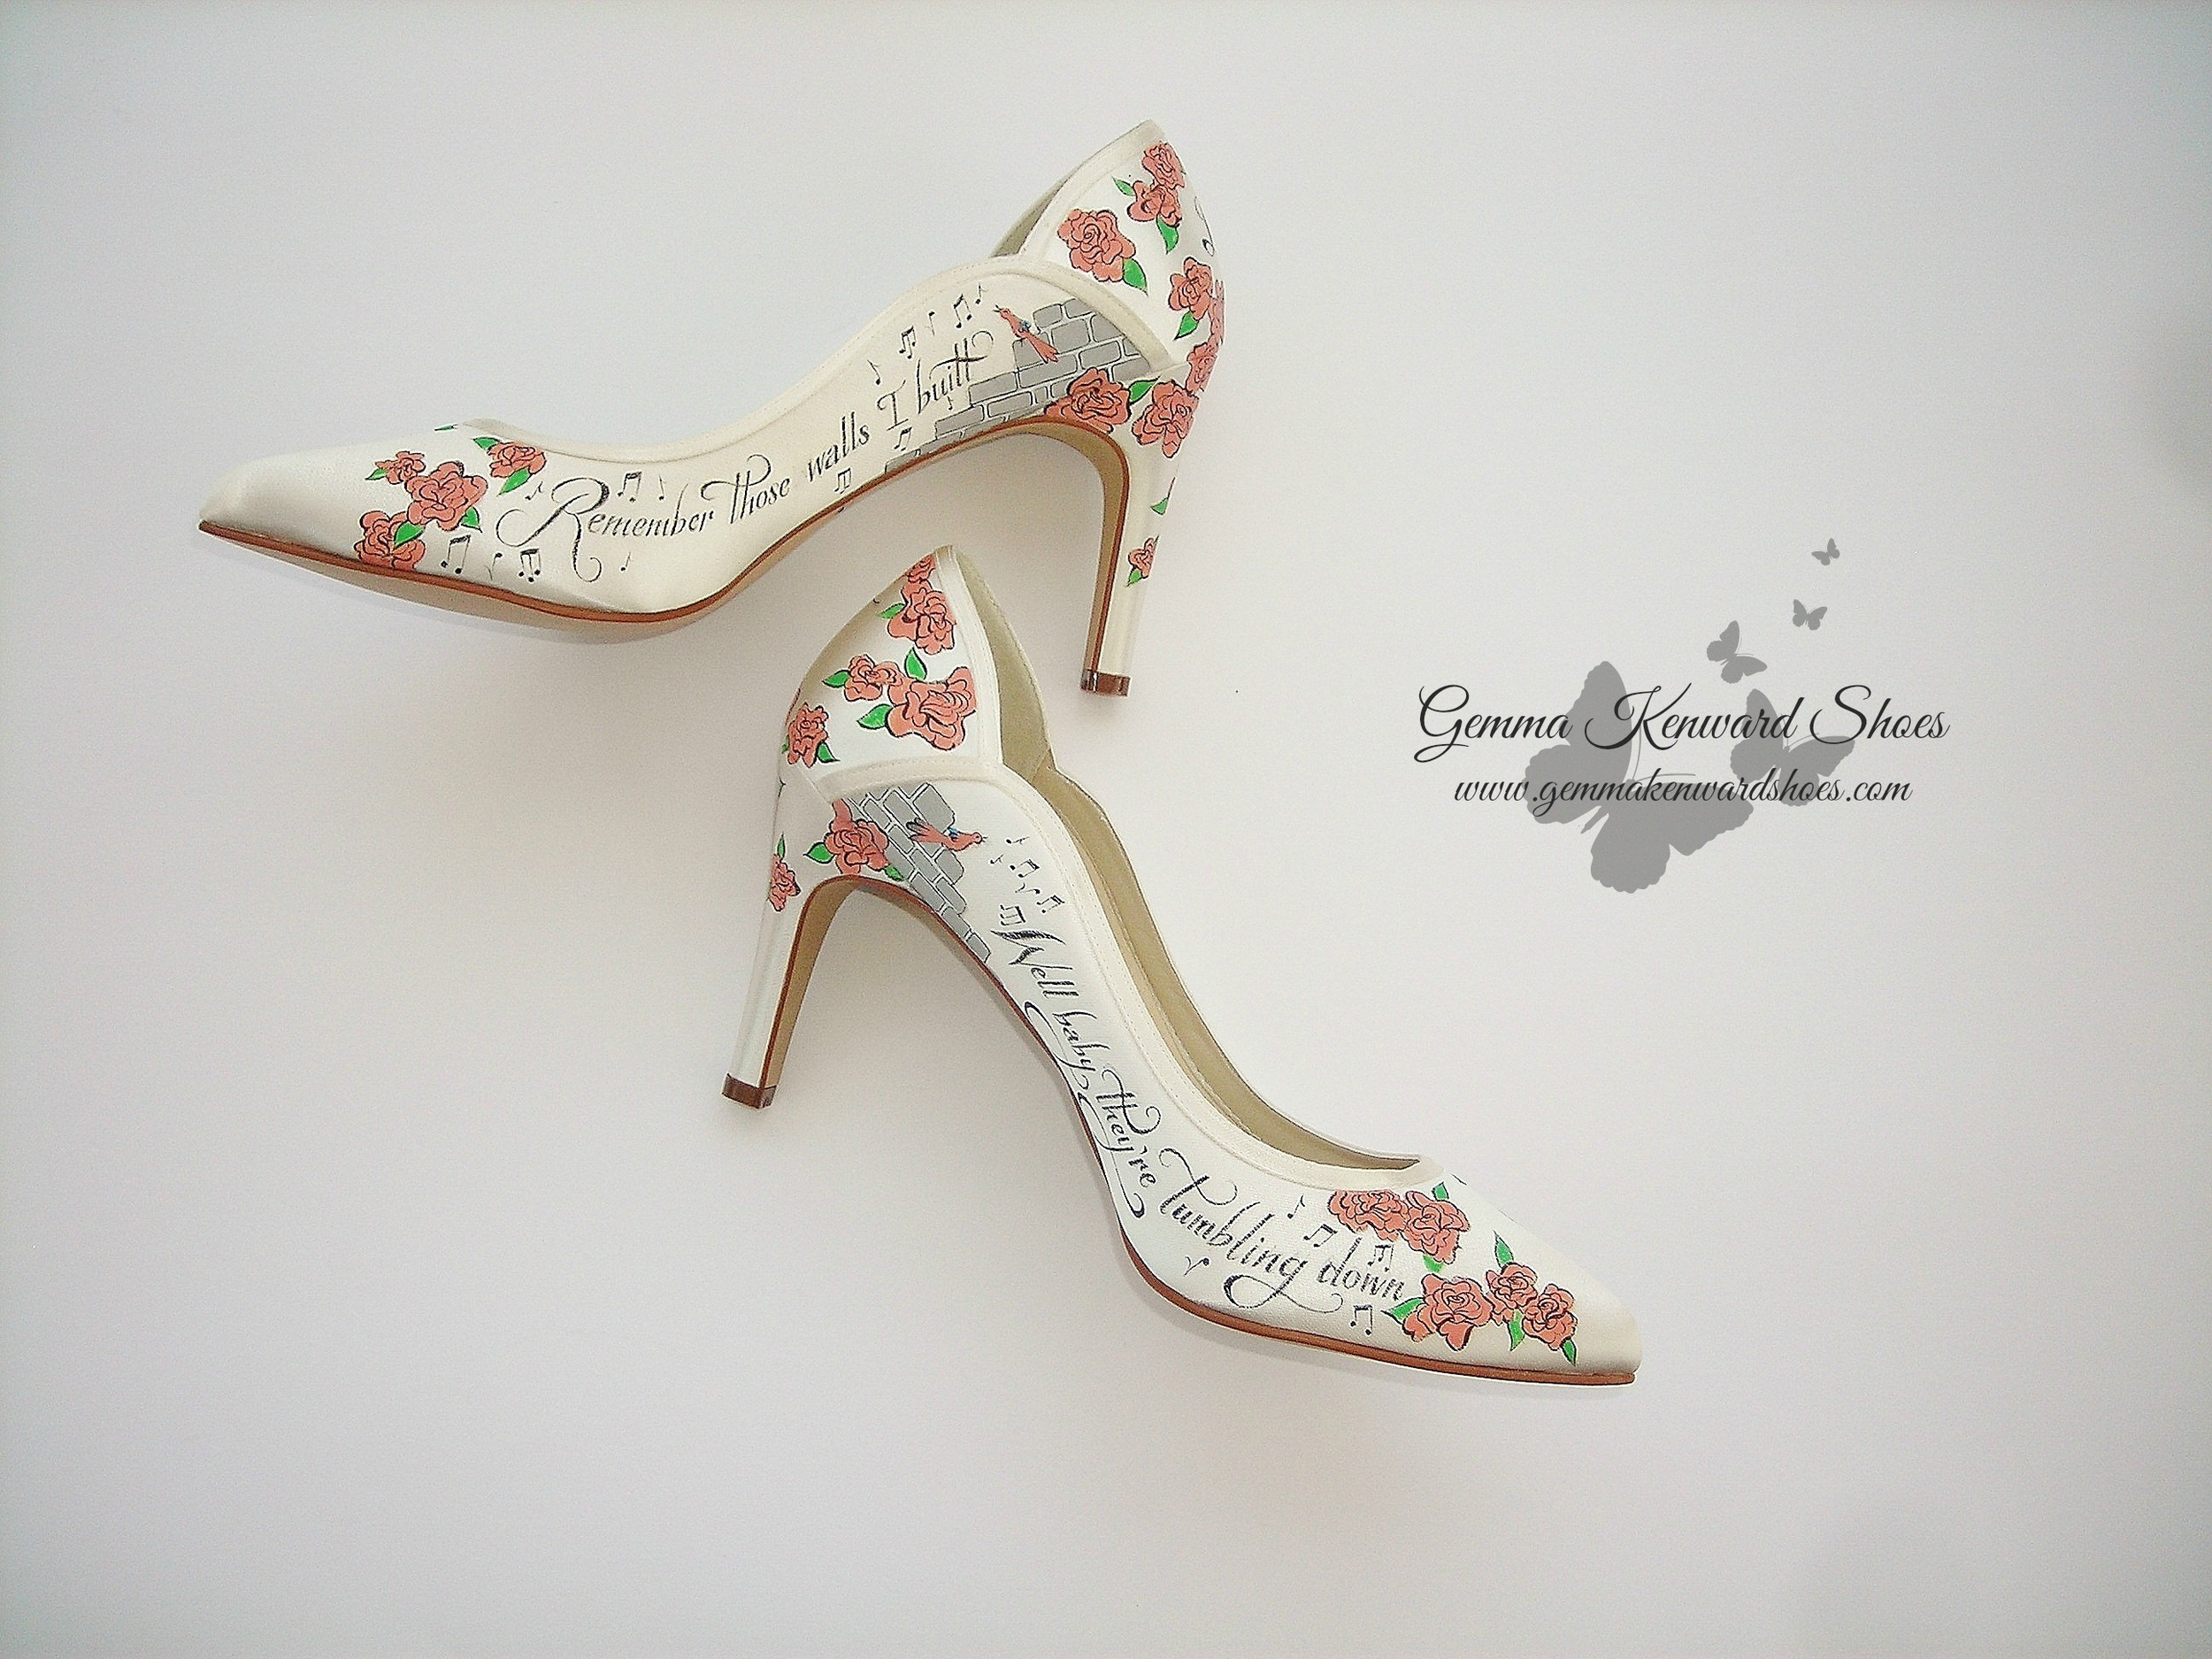 Pink roses painted onto a pair of bridal shoes for a London bride